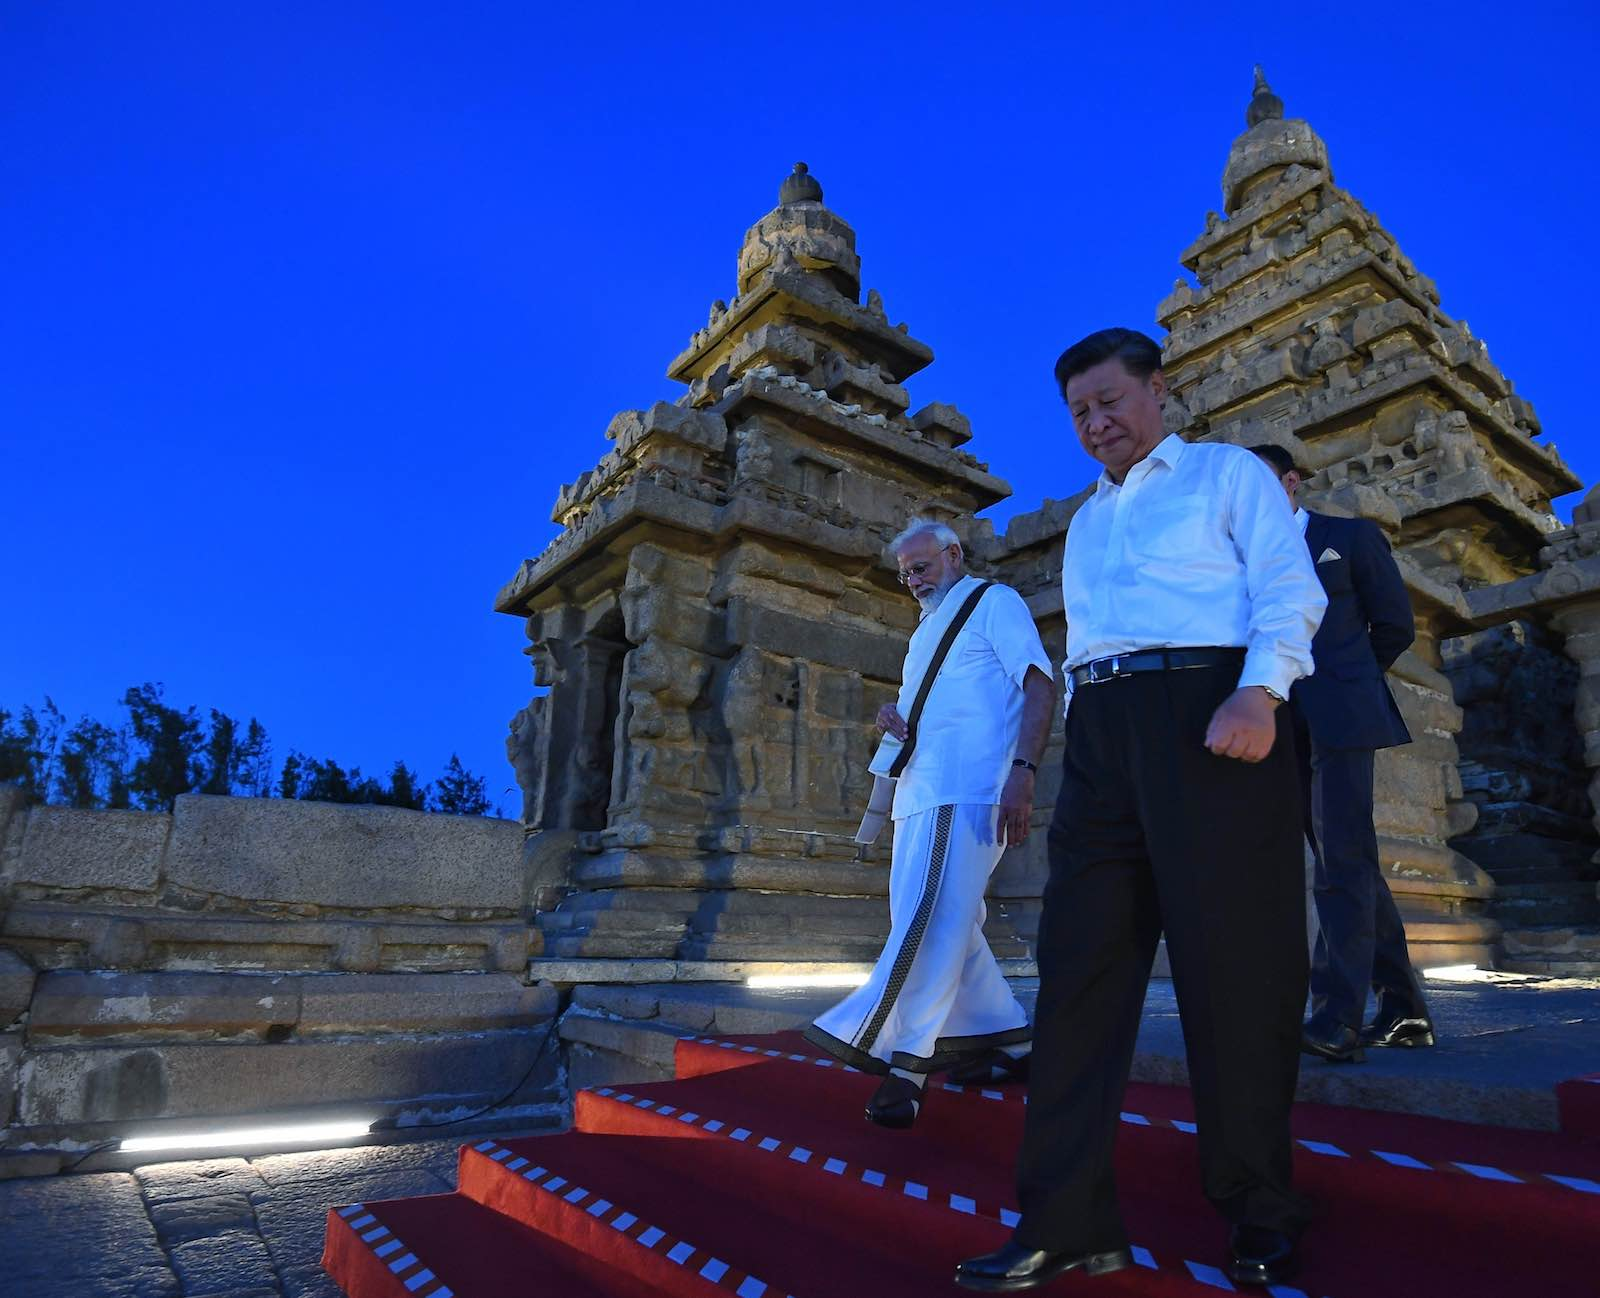 Narendra Modi and Xi Jinping at the Shore Temple, Mamallapuram (Photo: @narendramodi/Twitter)